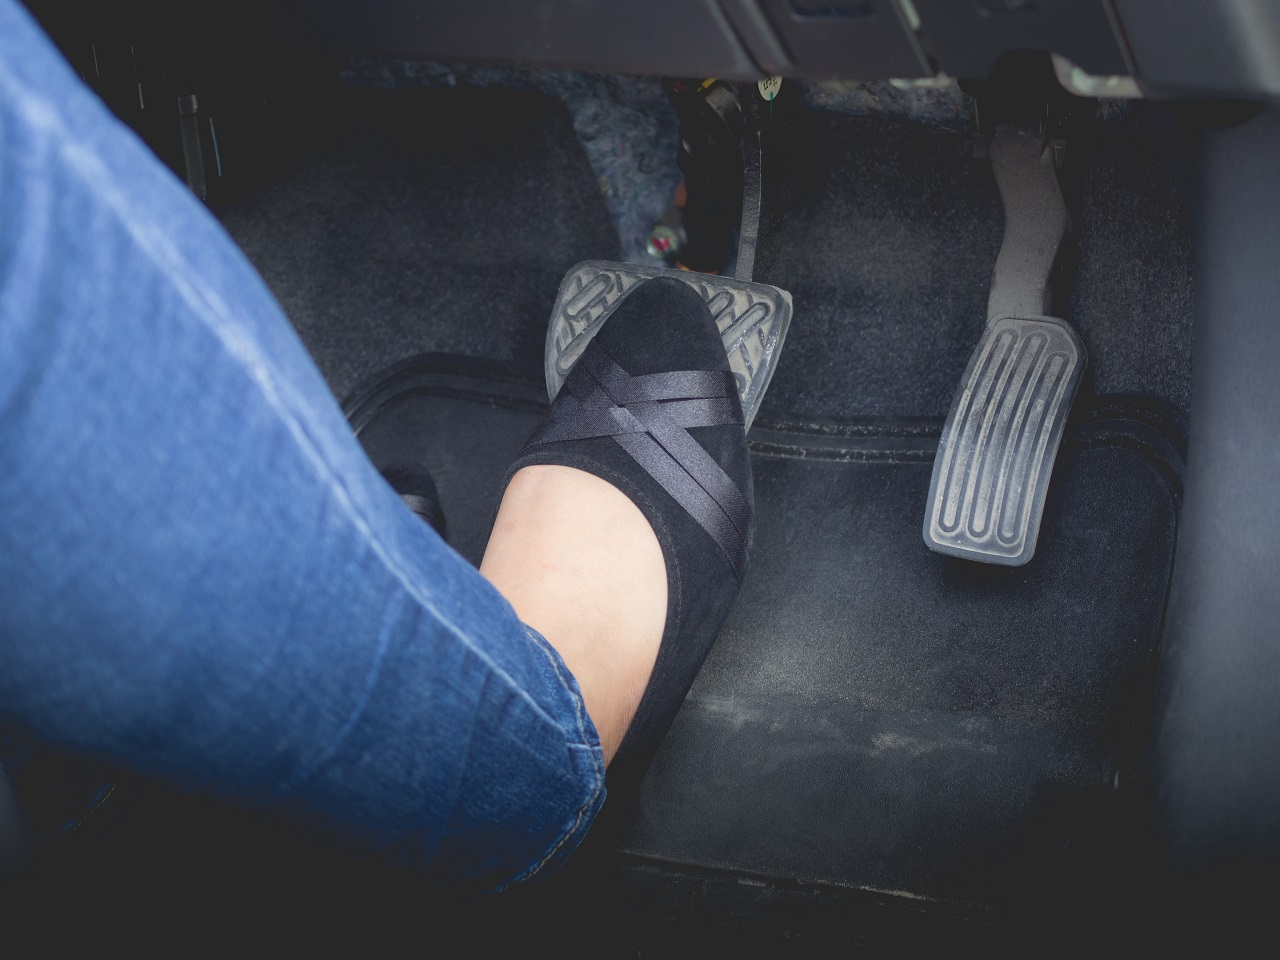 A woman's foot on the brake pedal